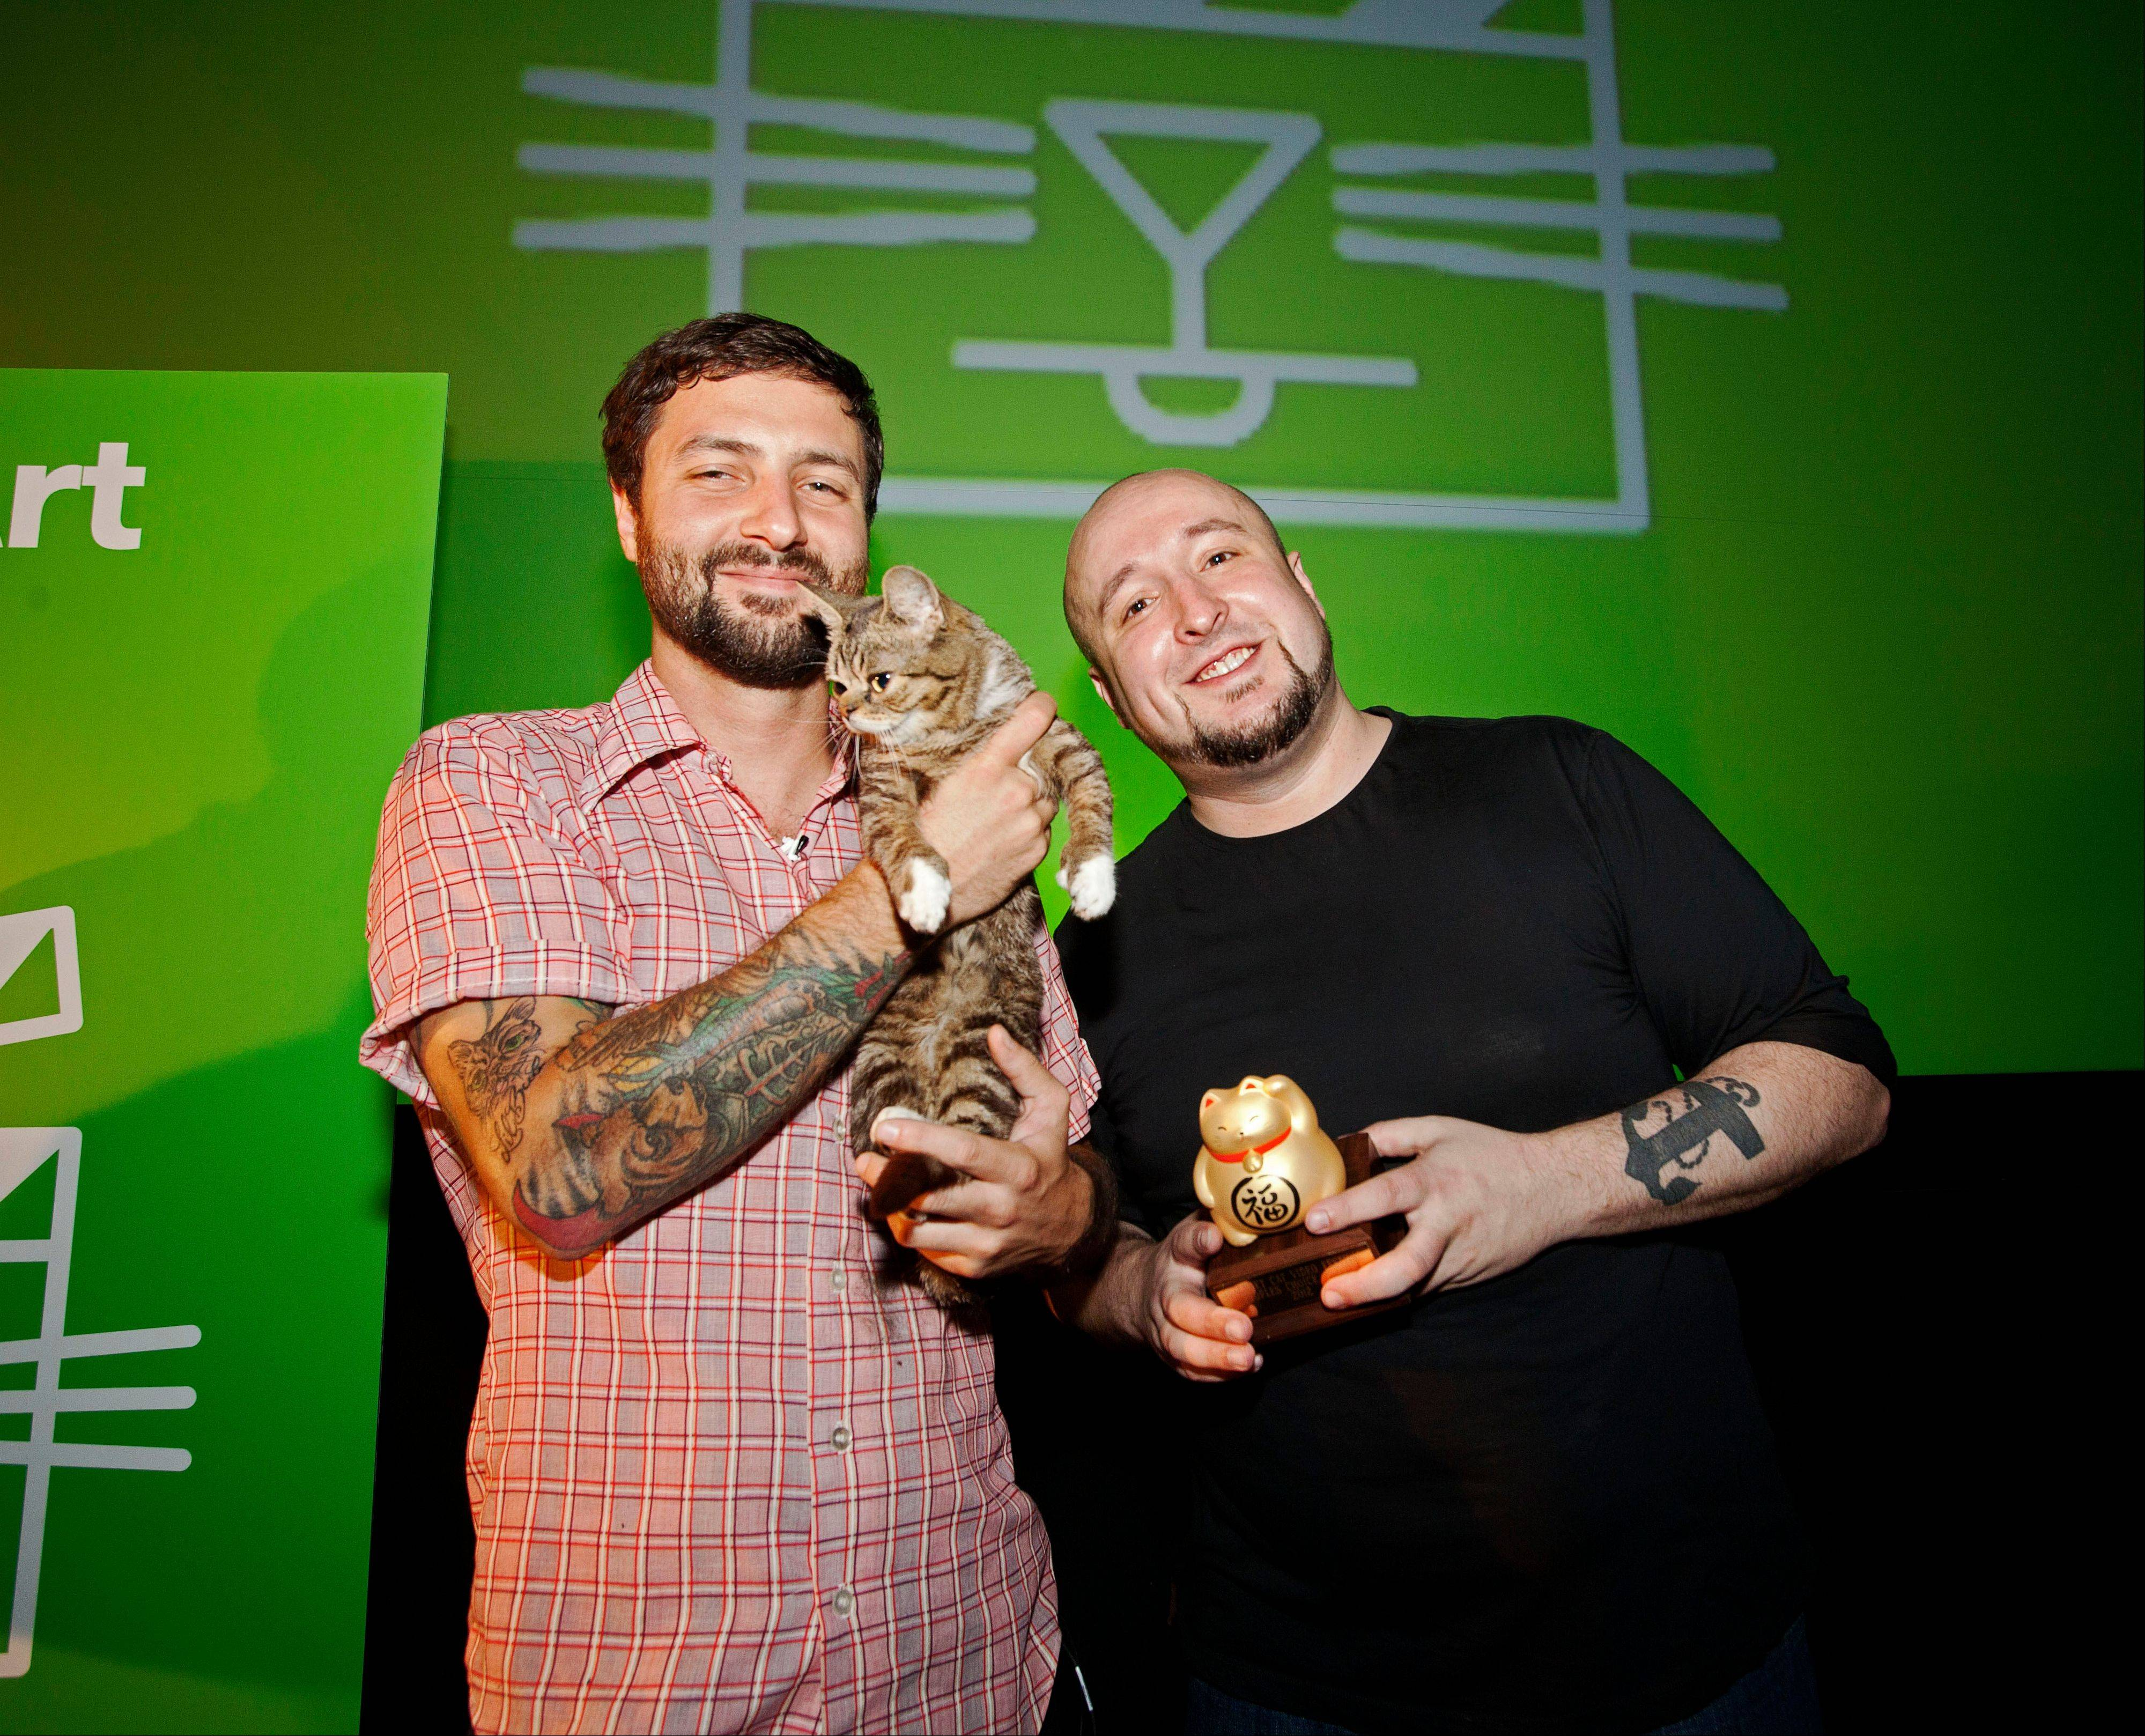 Festival attendee, Mike Bridavsky and his cat, Lil Bub, pose with Golden Kitty Award-winner William Braden at the Walker Art Center Internet Cat Video Festival in Minneapolis.